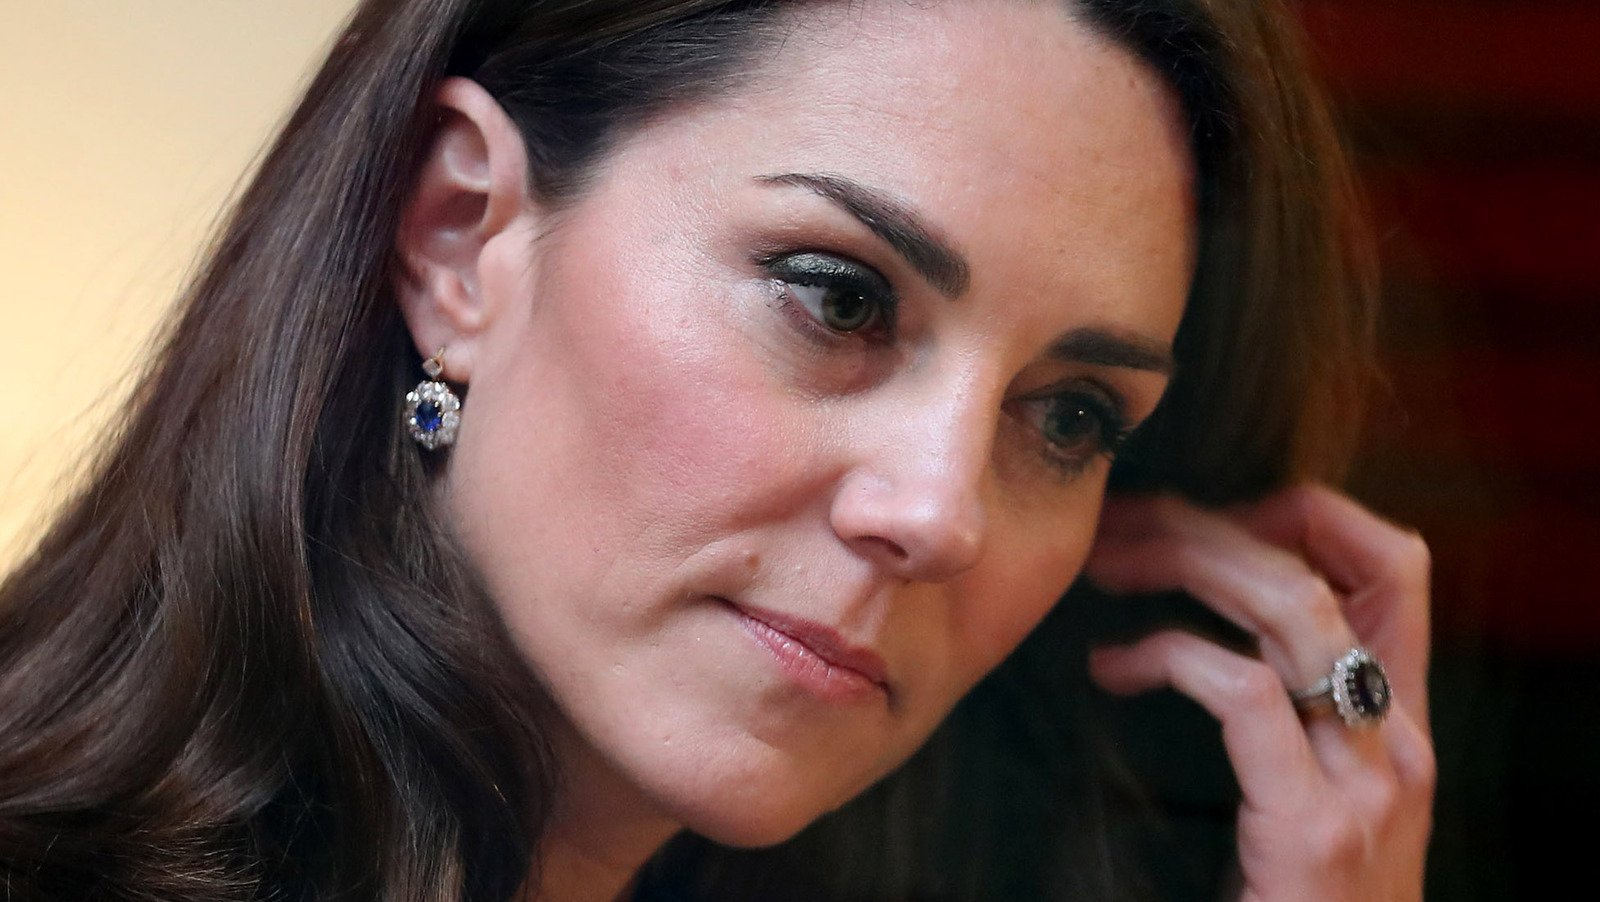 Kate Middleton Expressed Personal Sadness Over A Tragic Death